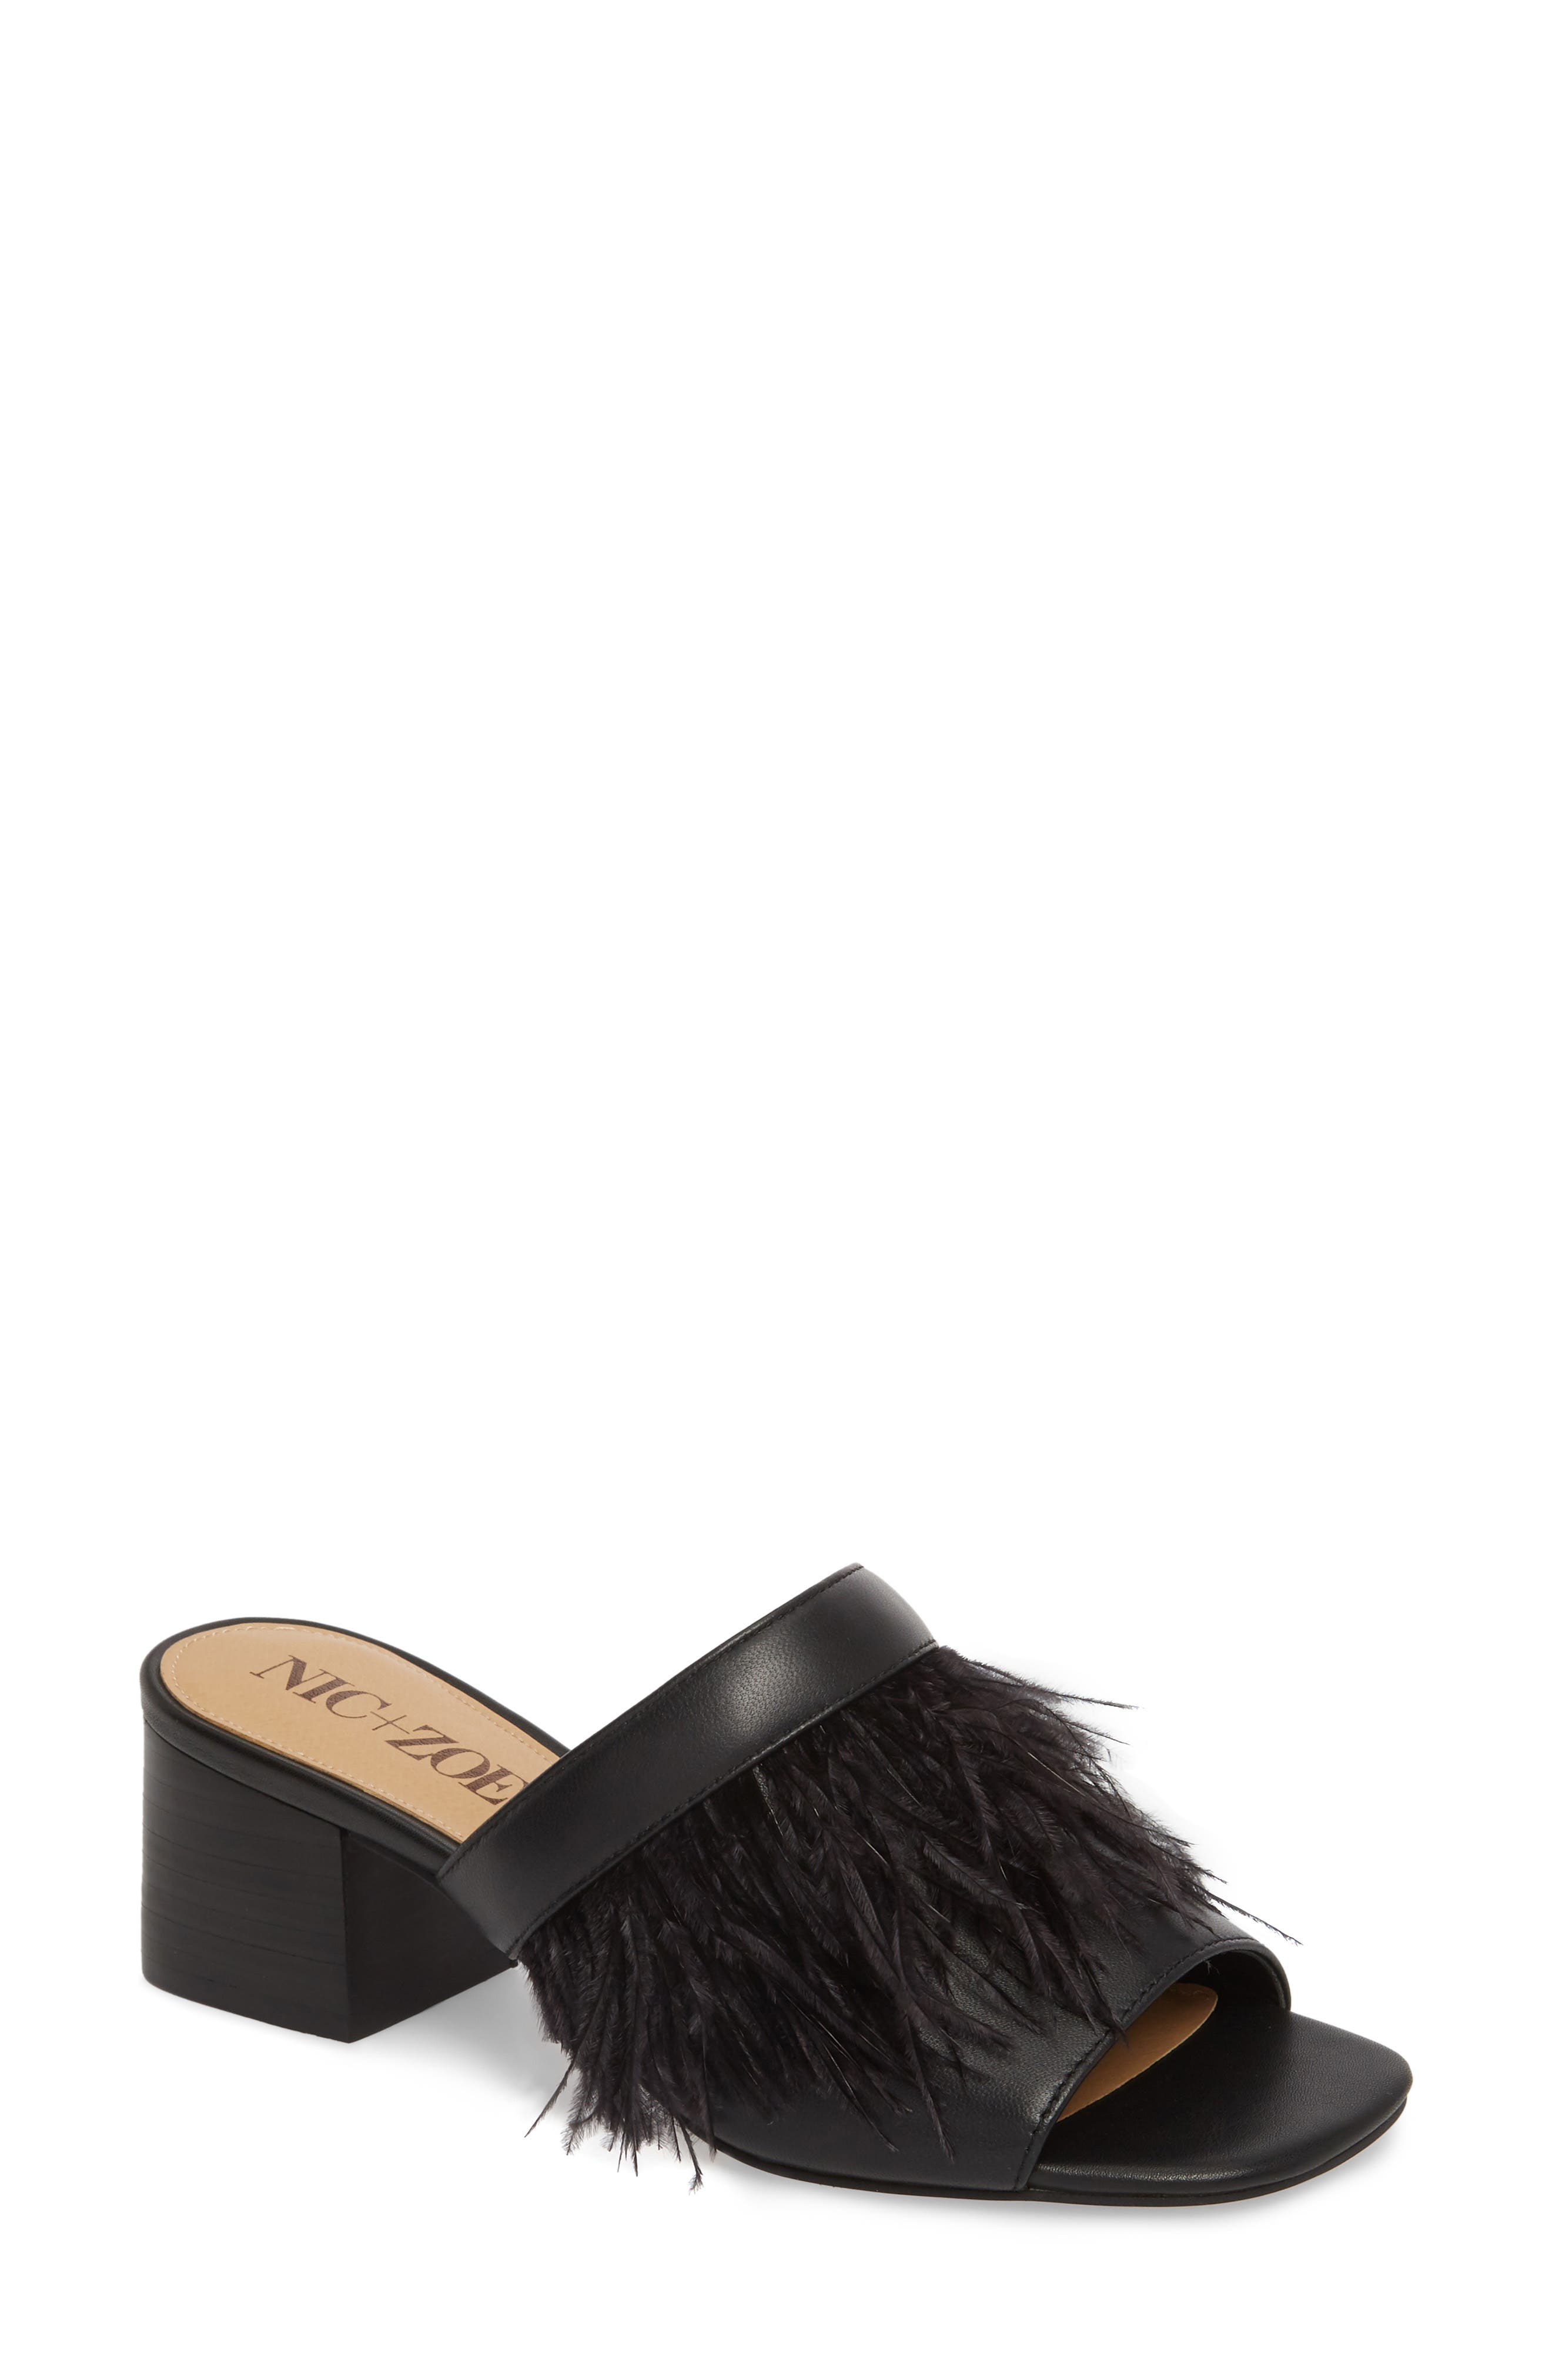 NIC + ZOE Feather Mule,                             Main thumbnail 1, color,                             BLACK LEATHER